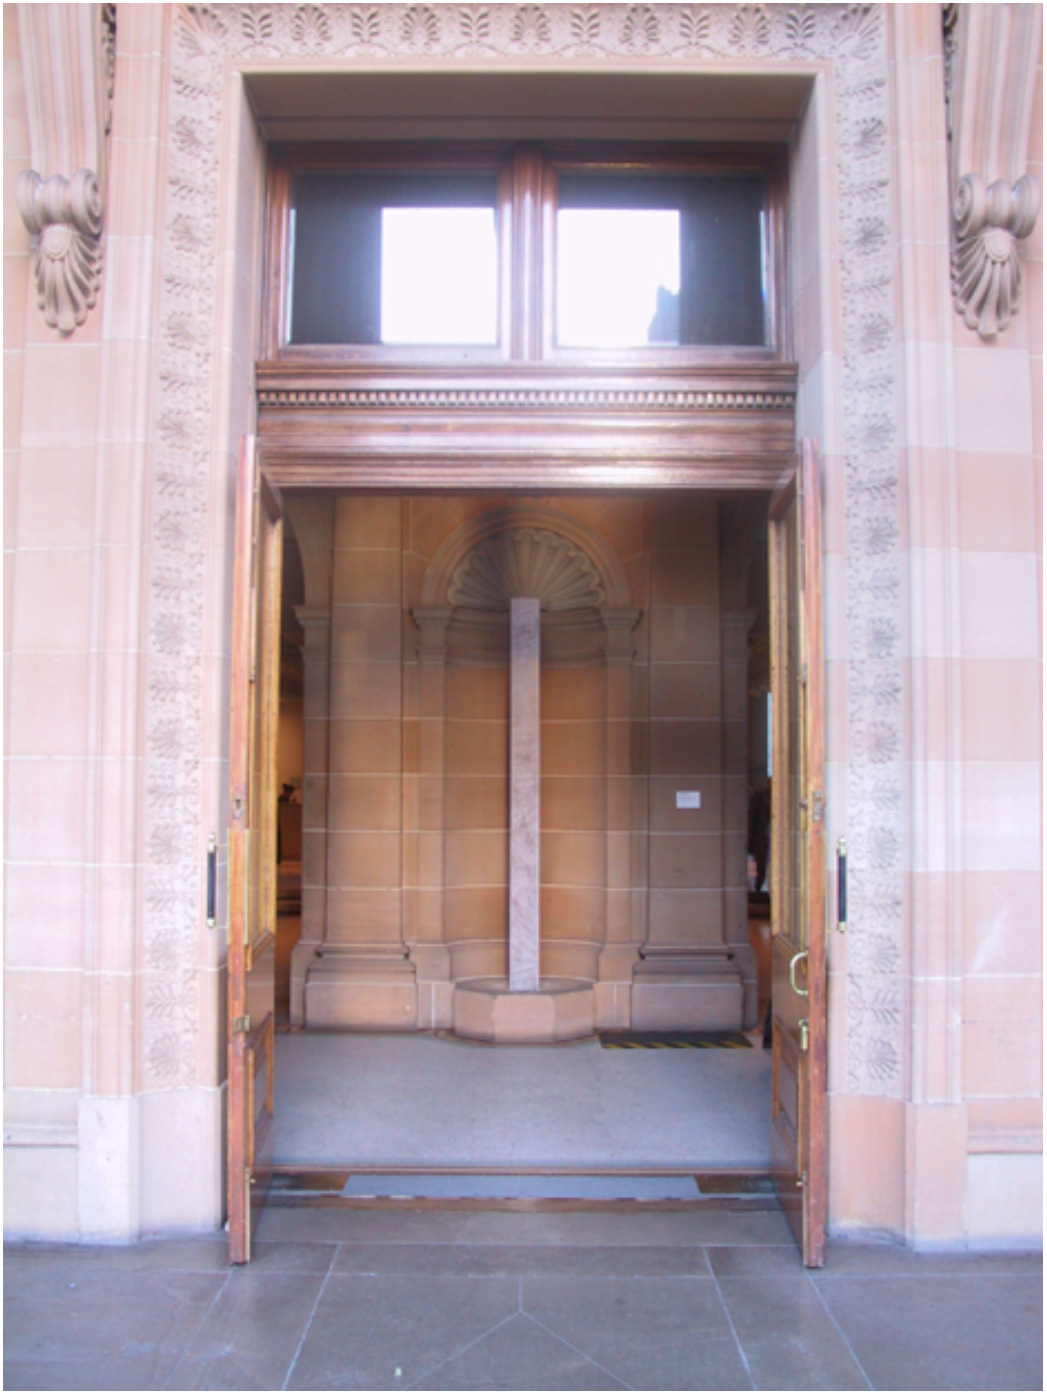 'AGNSW Entrance & Vestibule'; flocking, perspex, cable, sewn interfacing, steel plate, dimensions variable